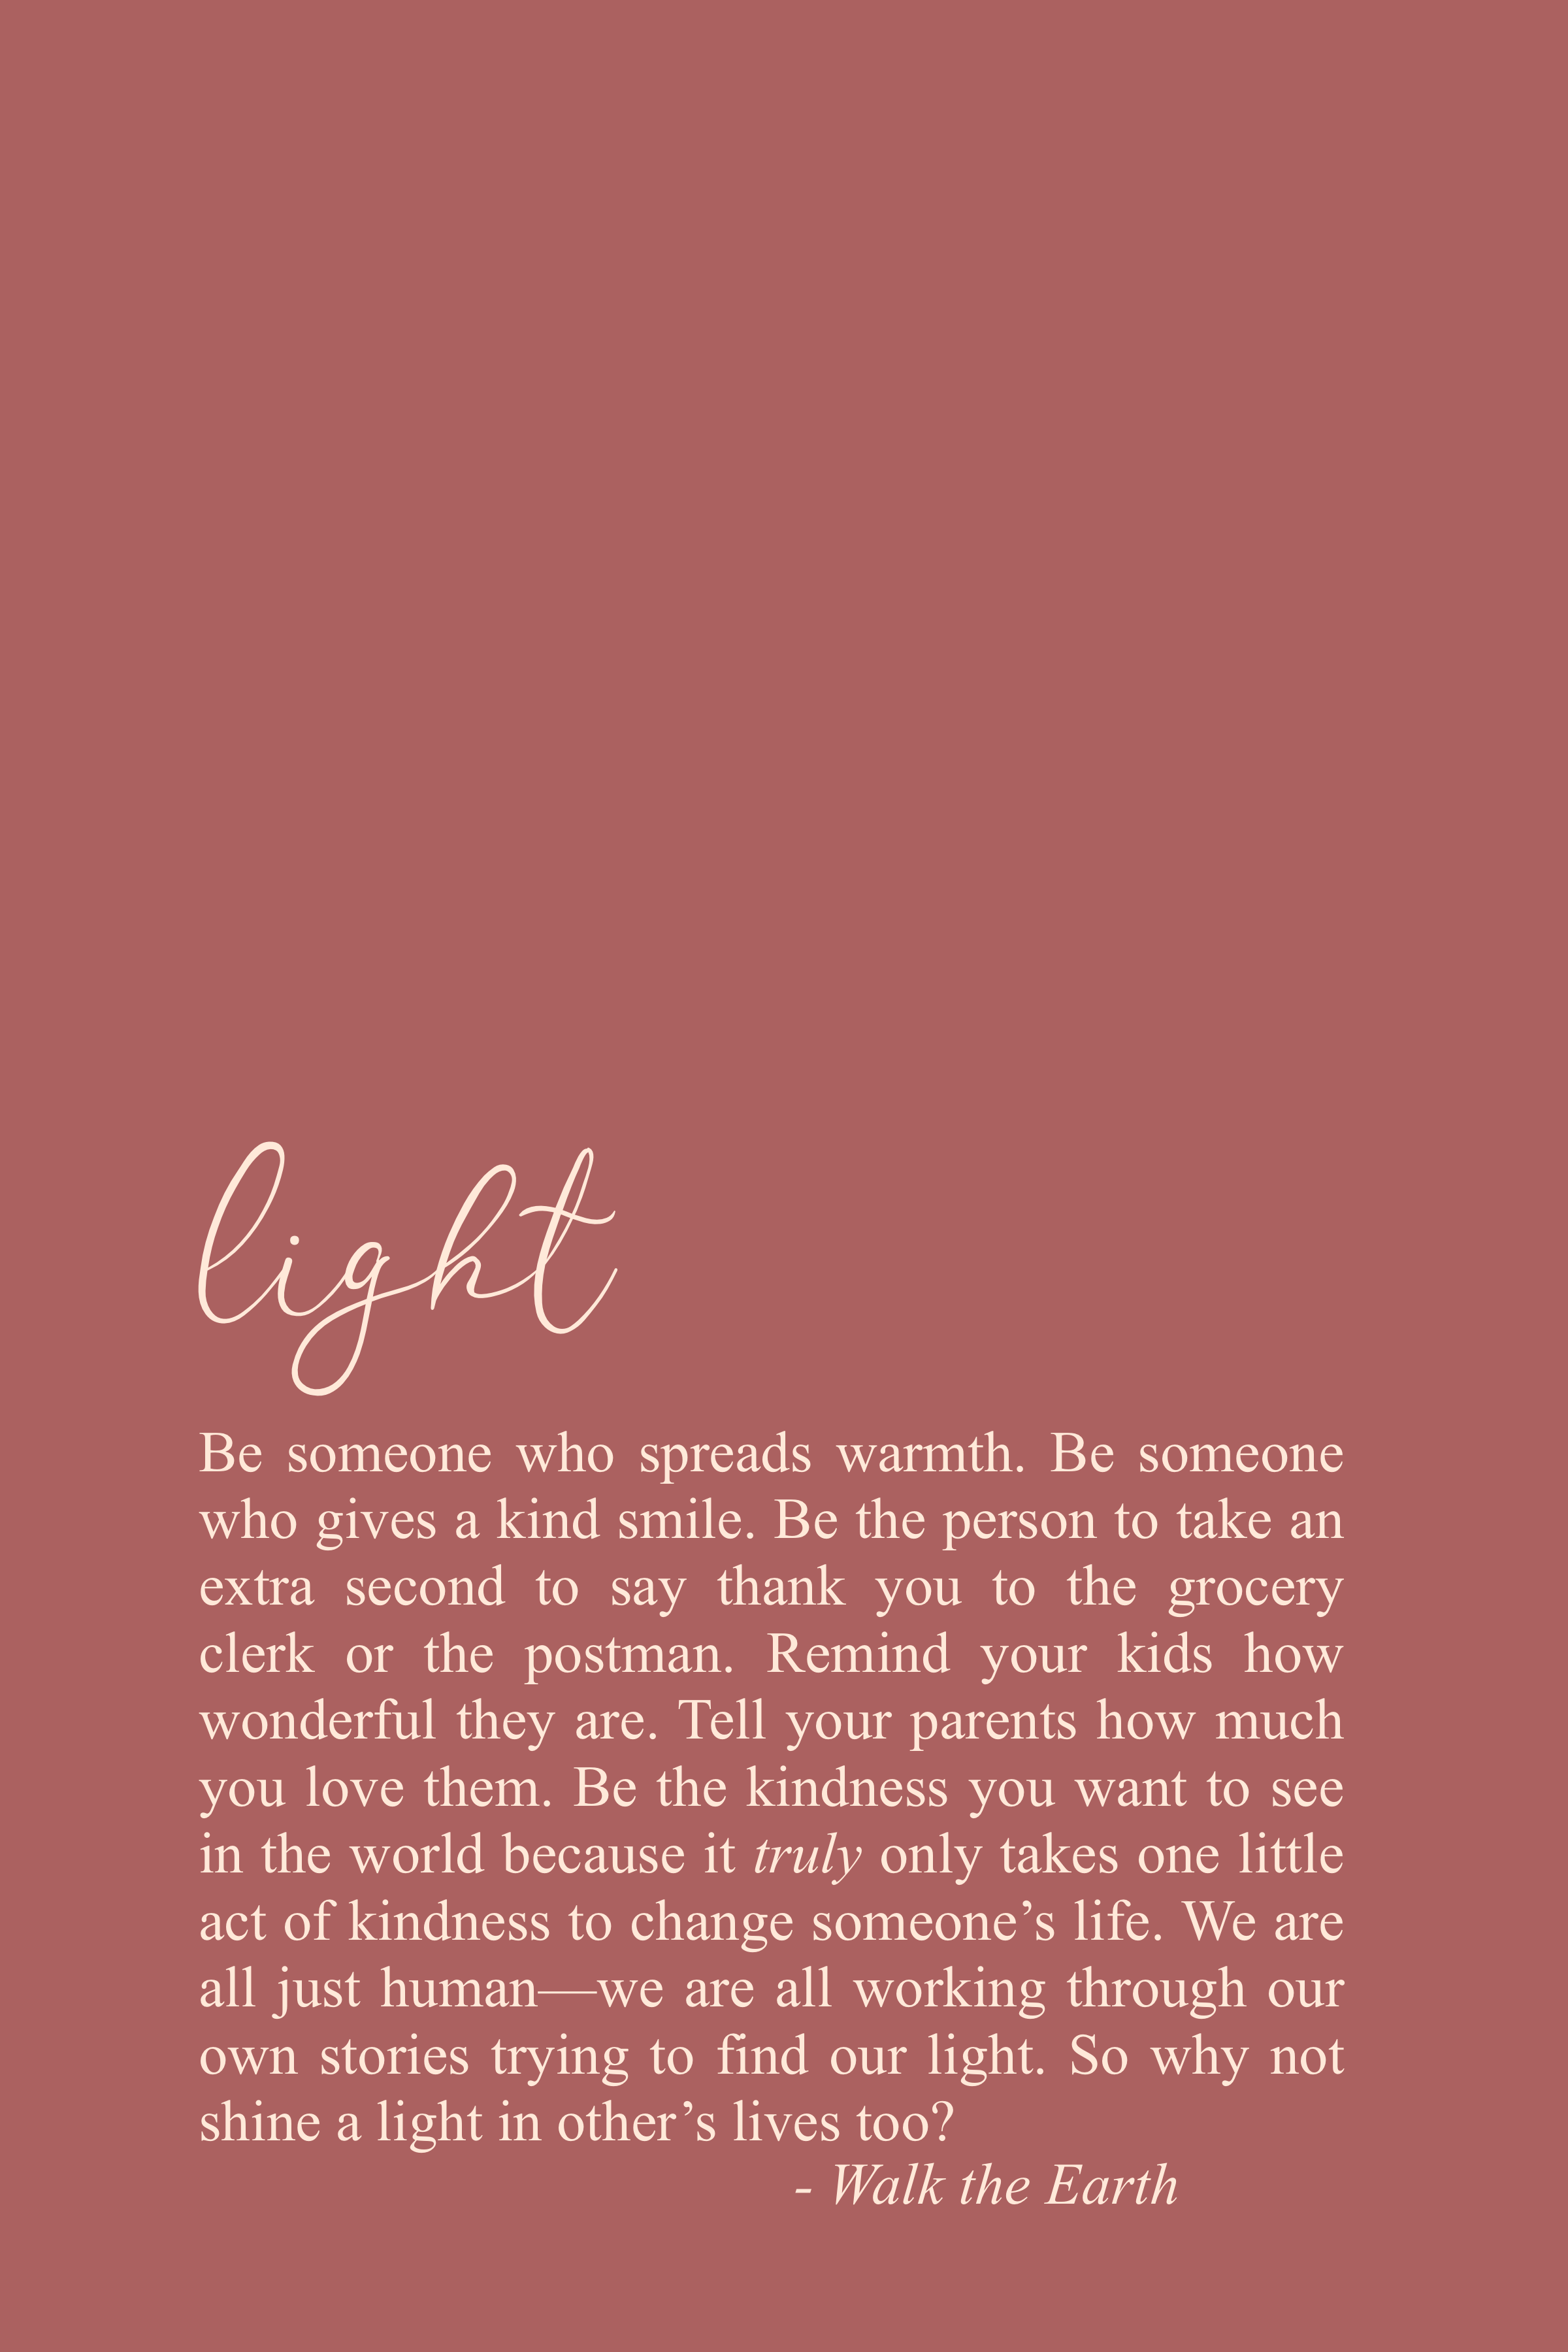 Photo of Kindness Quotes, Kindness matters, Be Kind, Inspirational Words to Live By – Lighting